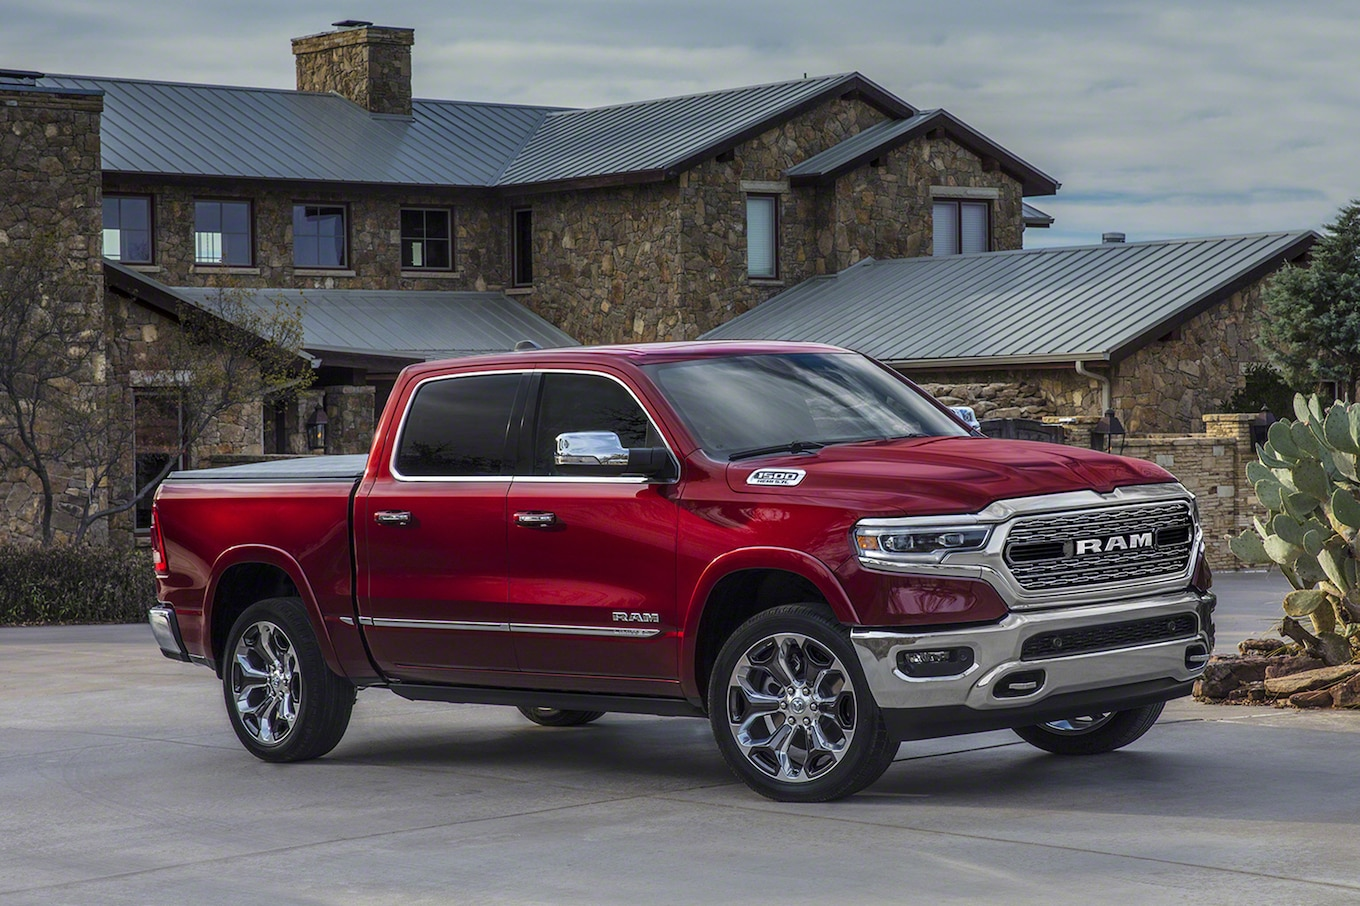 84 The Best 2019 Dodge Ram Truck Redesign